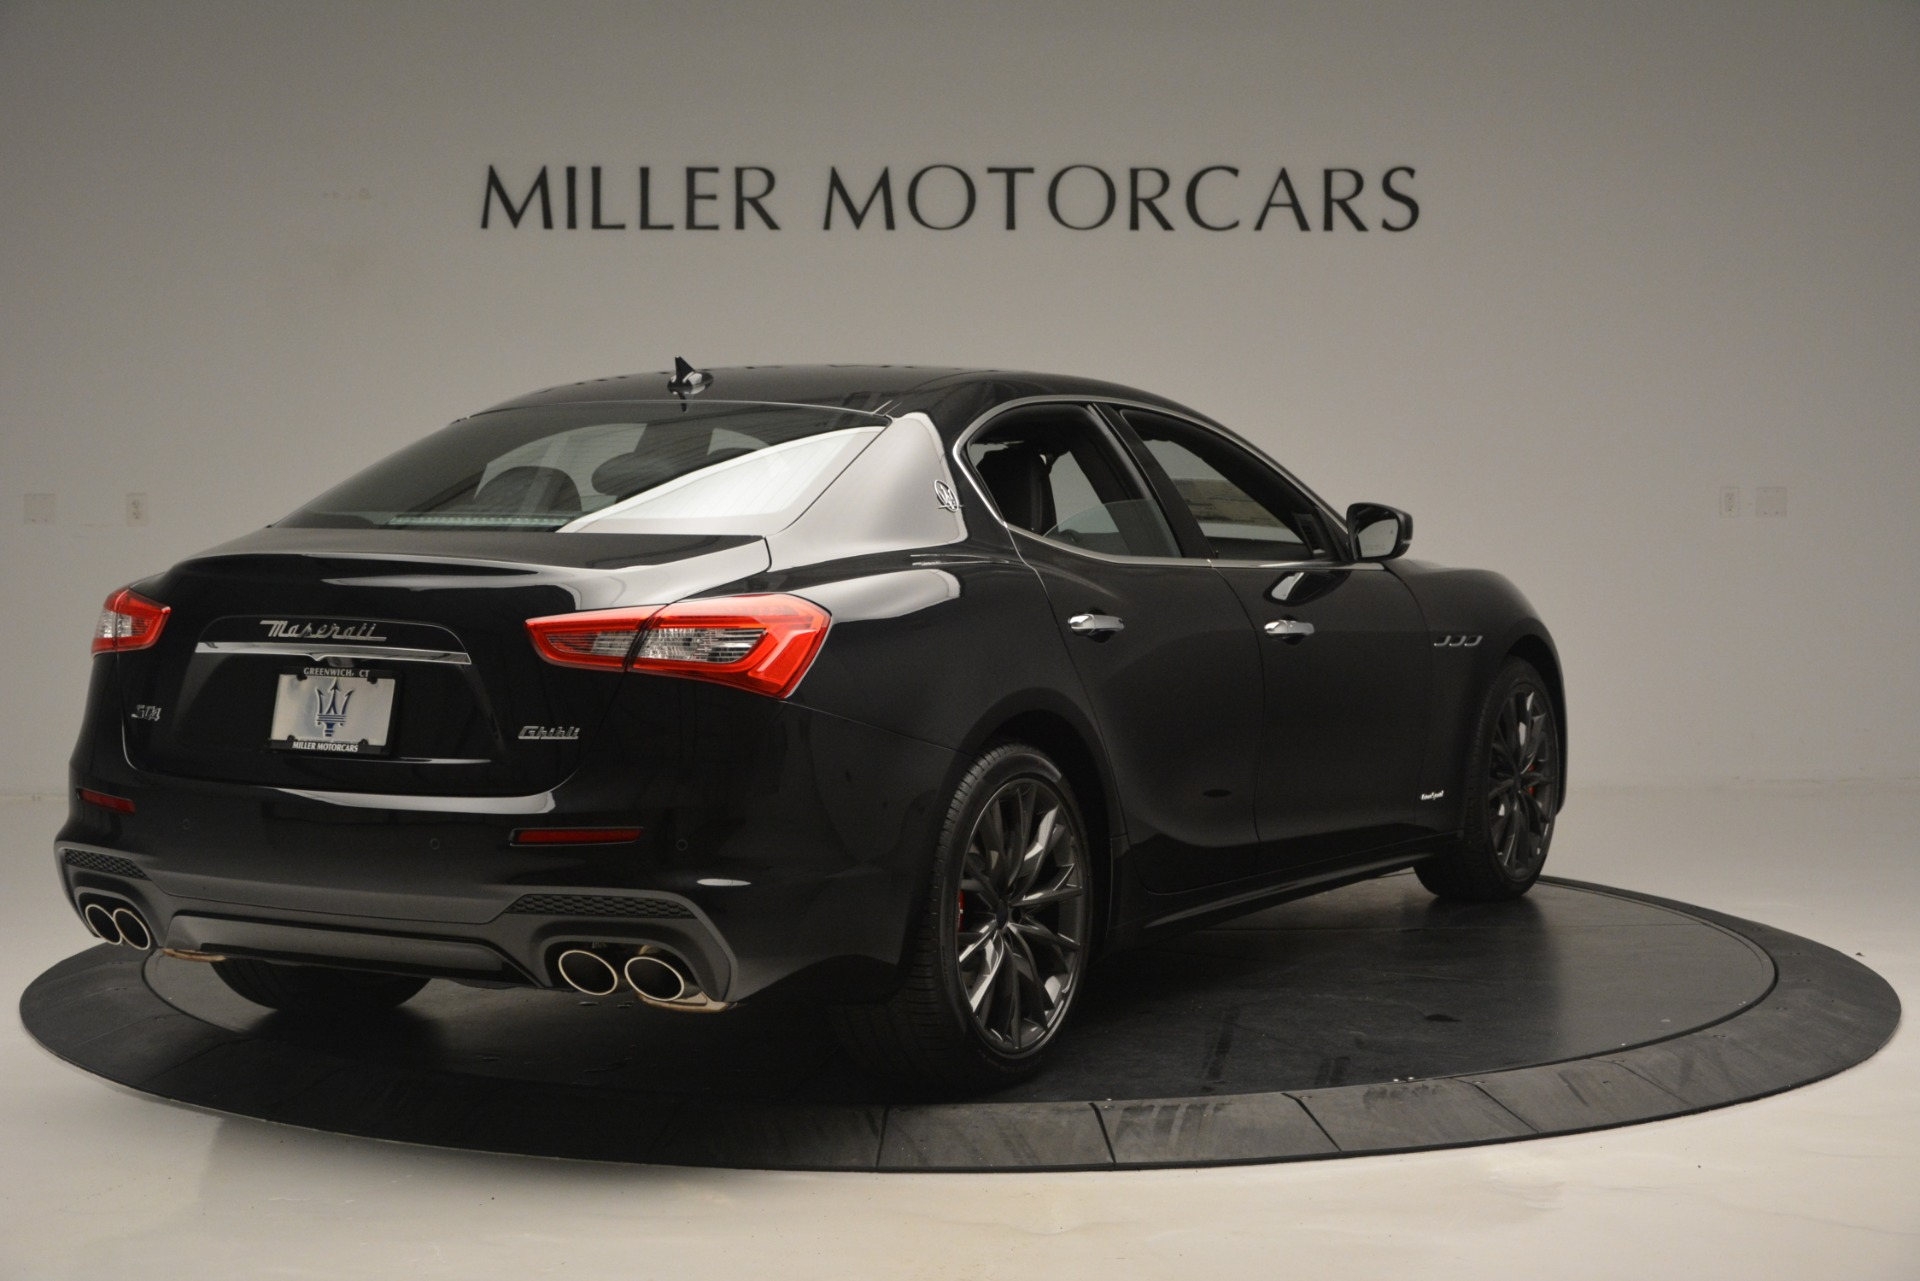 New 2019 Maserati Ghibli S Q4 GranSport For Sale In Westport, CT 2765_p7